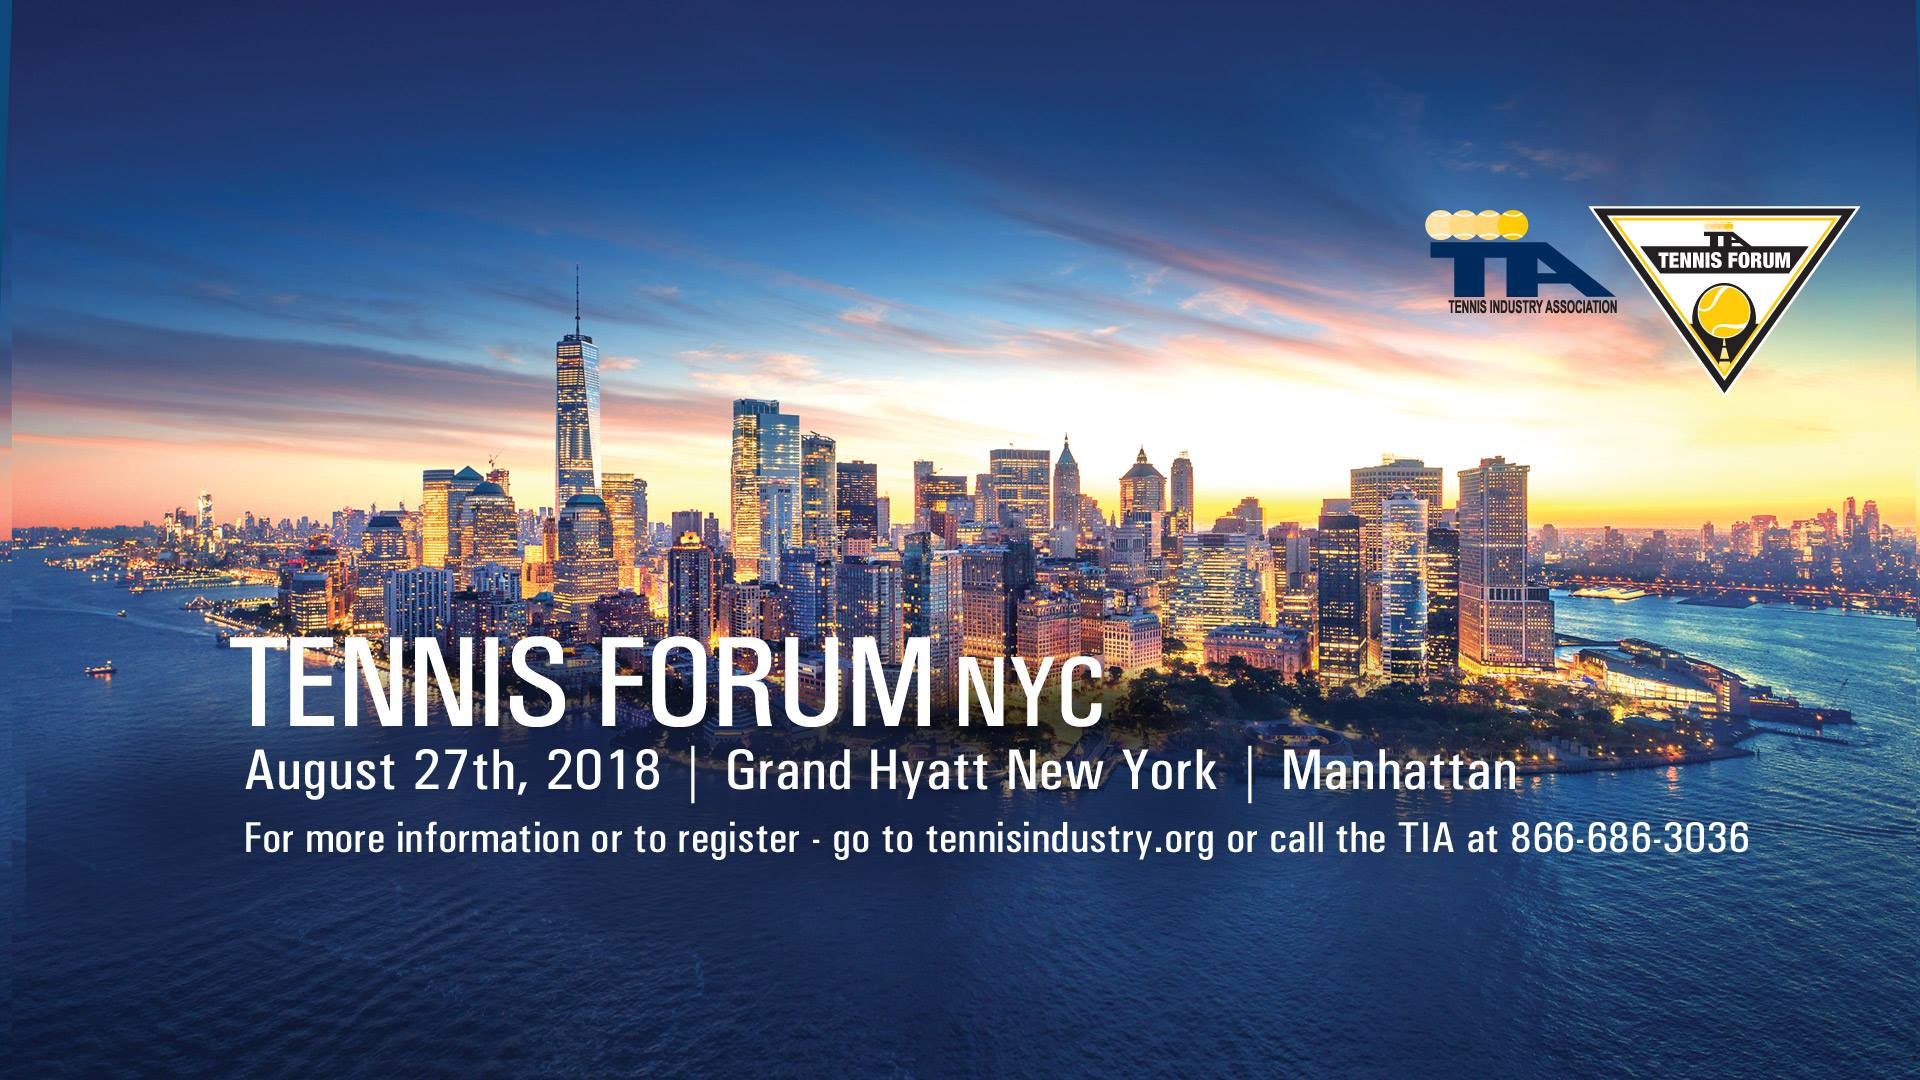 TIA Tennis Forum NYC